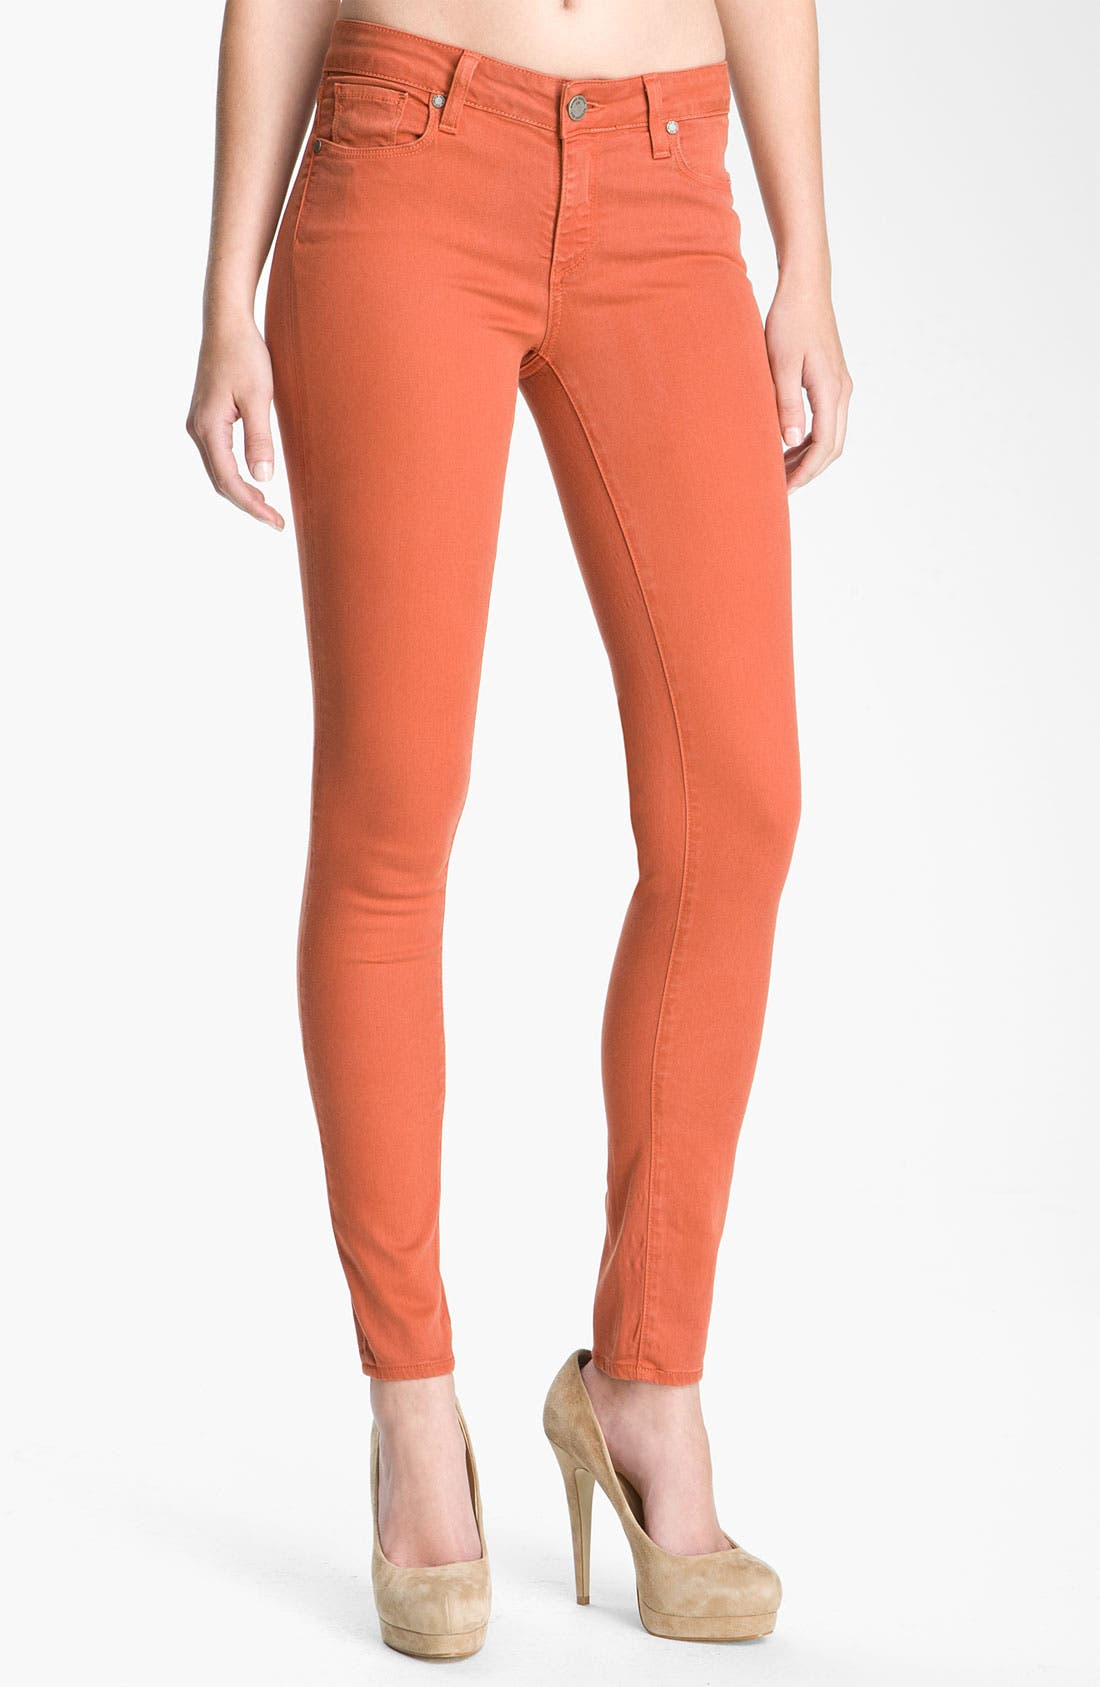 Alternate Image 1 Selected - Paige Denim 'Verdugo' Skinny Stretch Jeans (Picasso)